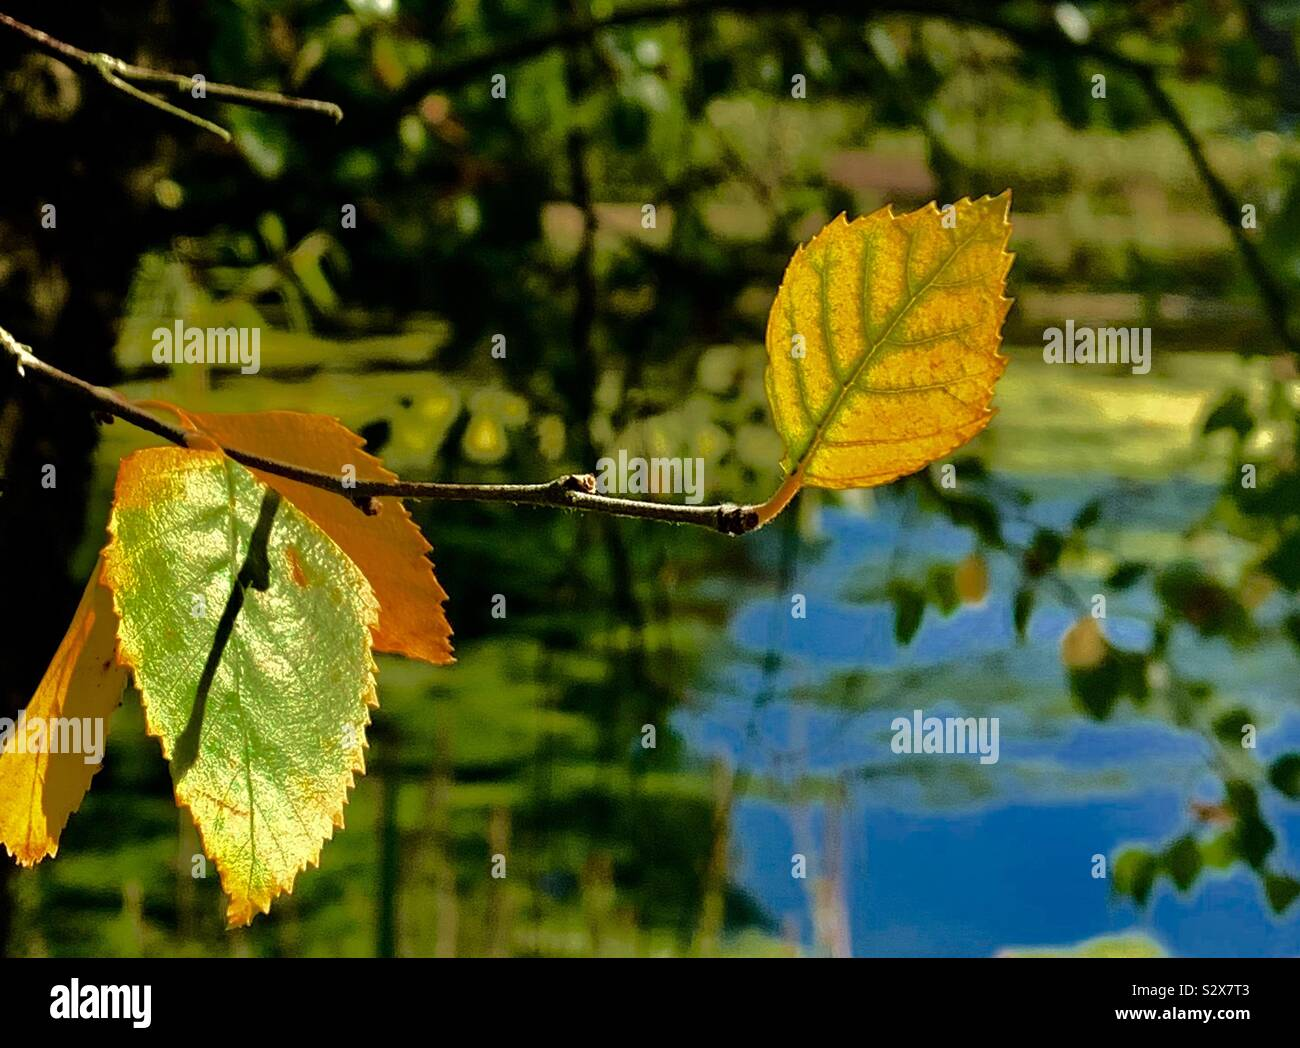 Autumn leaves before they leave the tree and land on the ground enjoying the last warm days happy on the tree branch Stock Photo